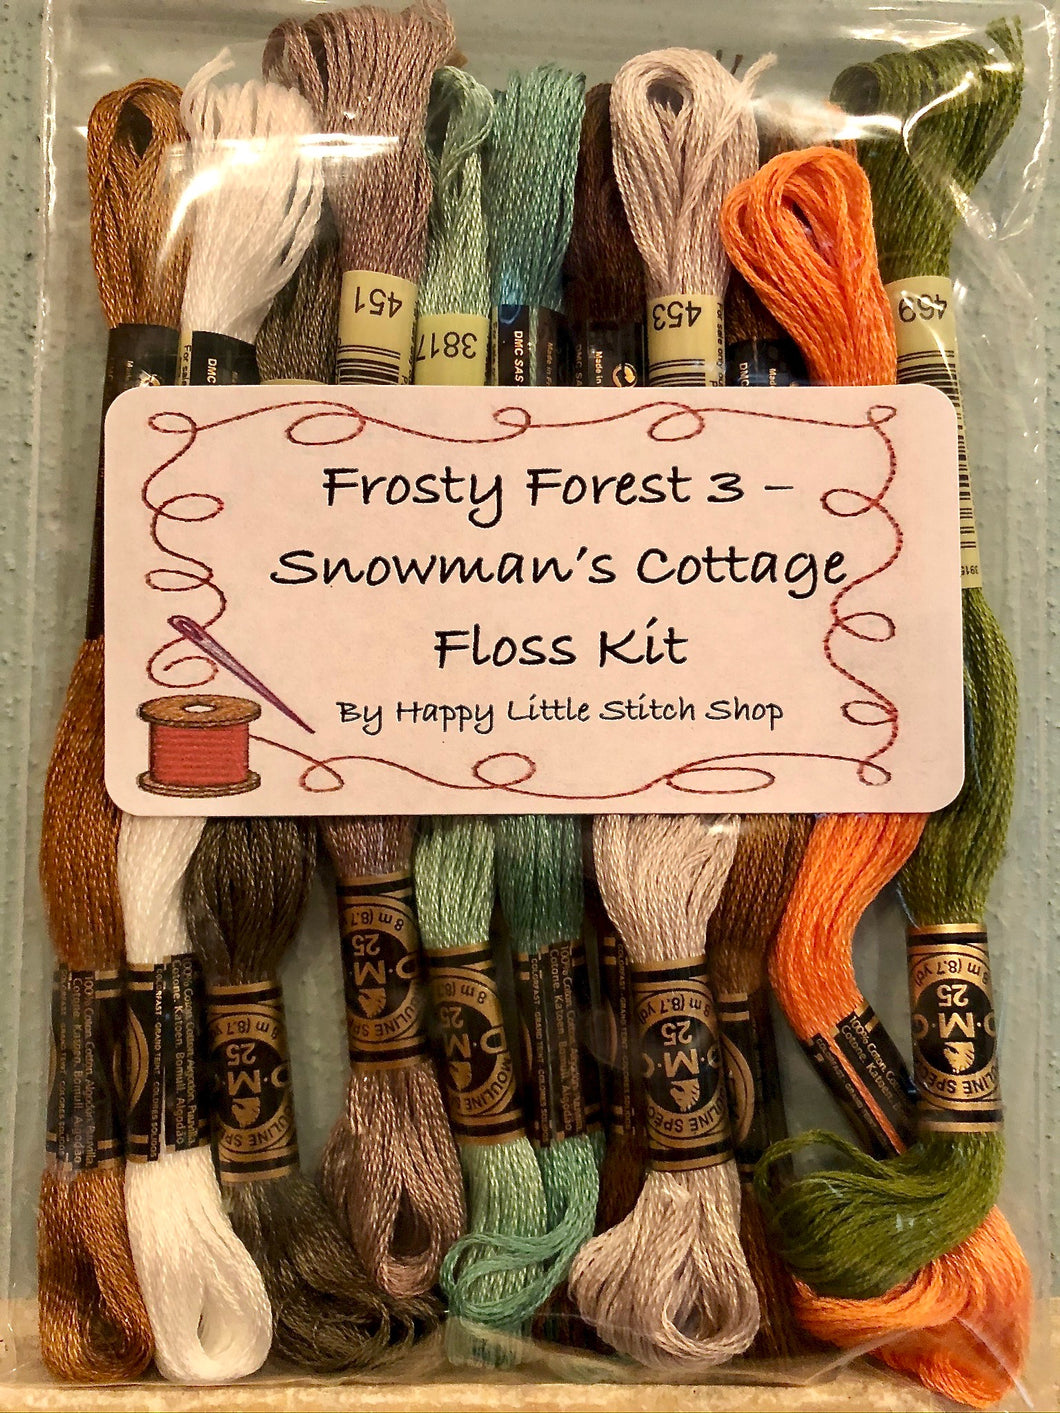 Floss Kit - Frosty Forest 3 - Snowman's Cottage